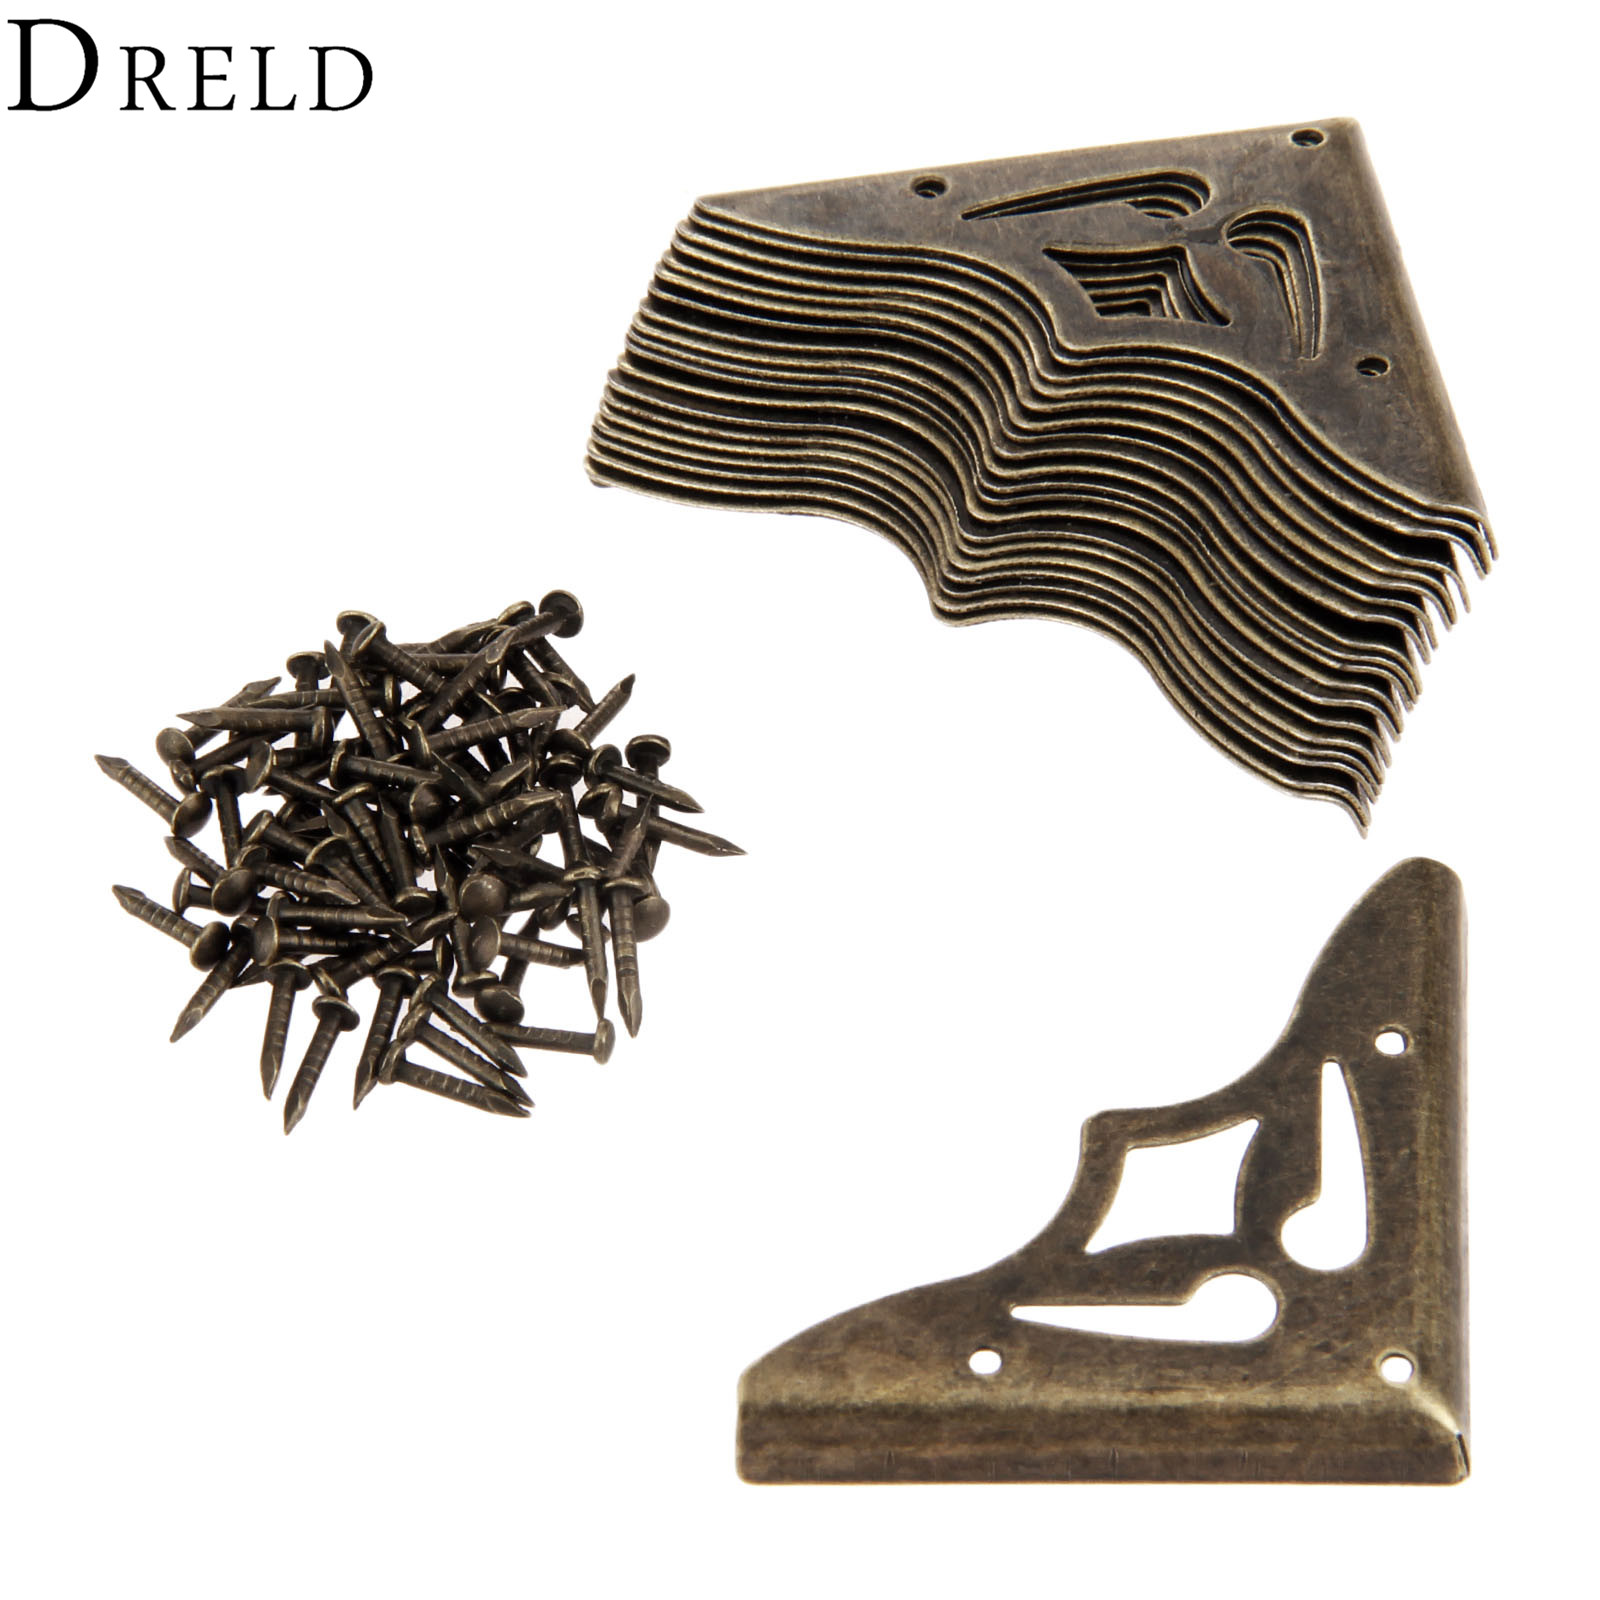 DRELD 20Pcs Furniture Metal Craft  Antique Bronze Jewelry Box Corner Foot Wooden Case Corner Protector Decorative Corner 35mm